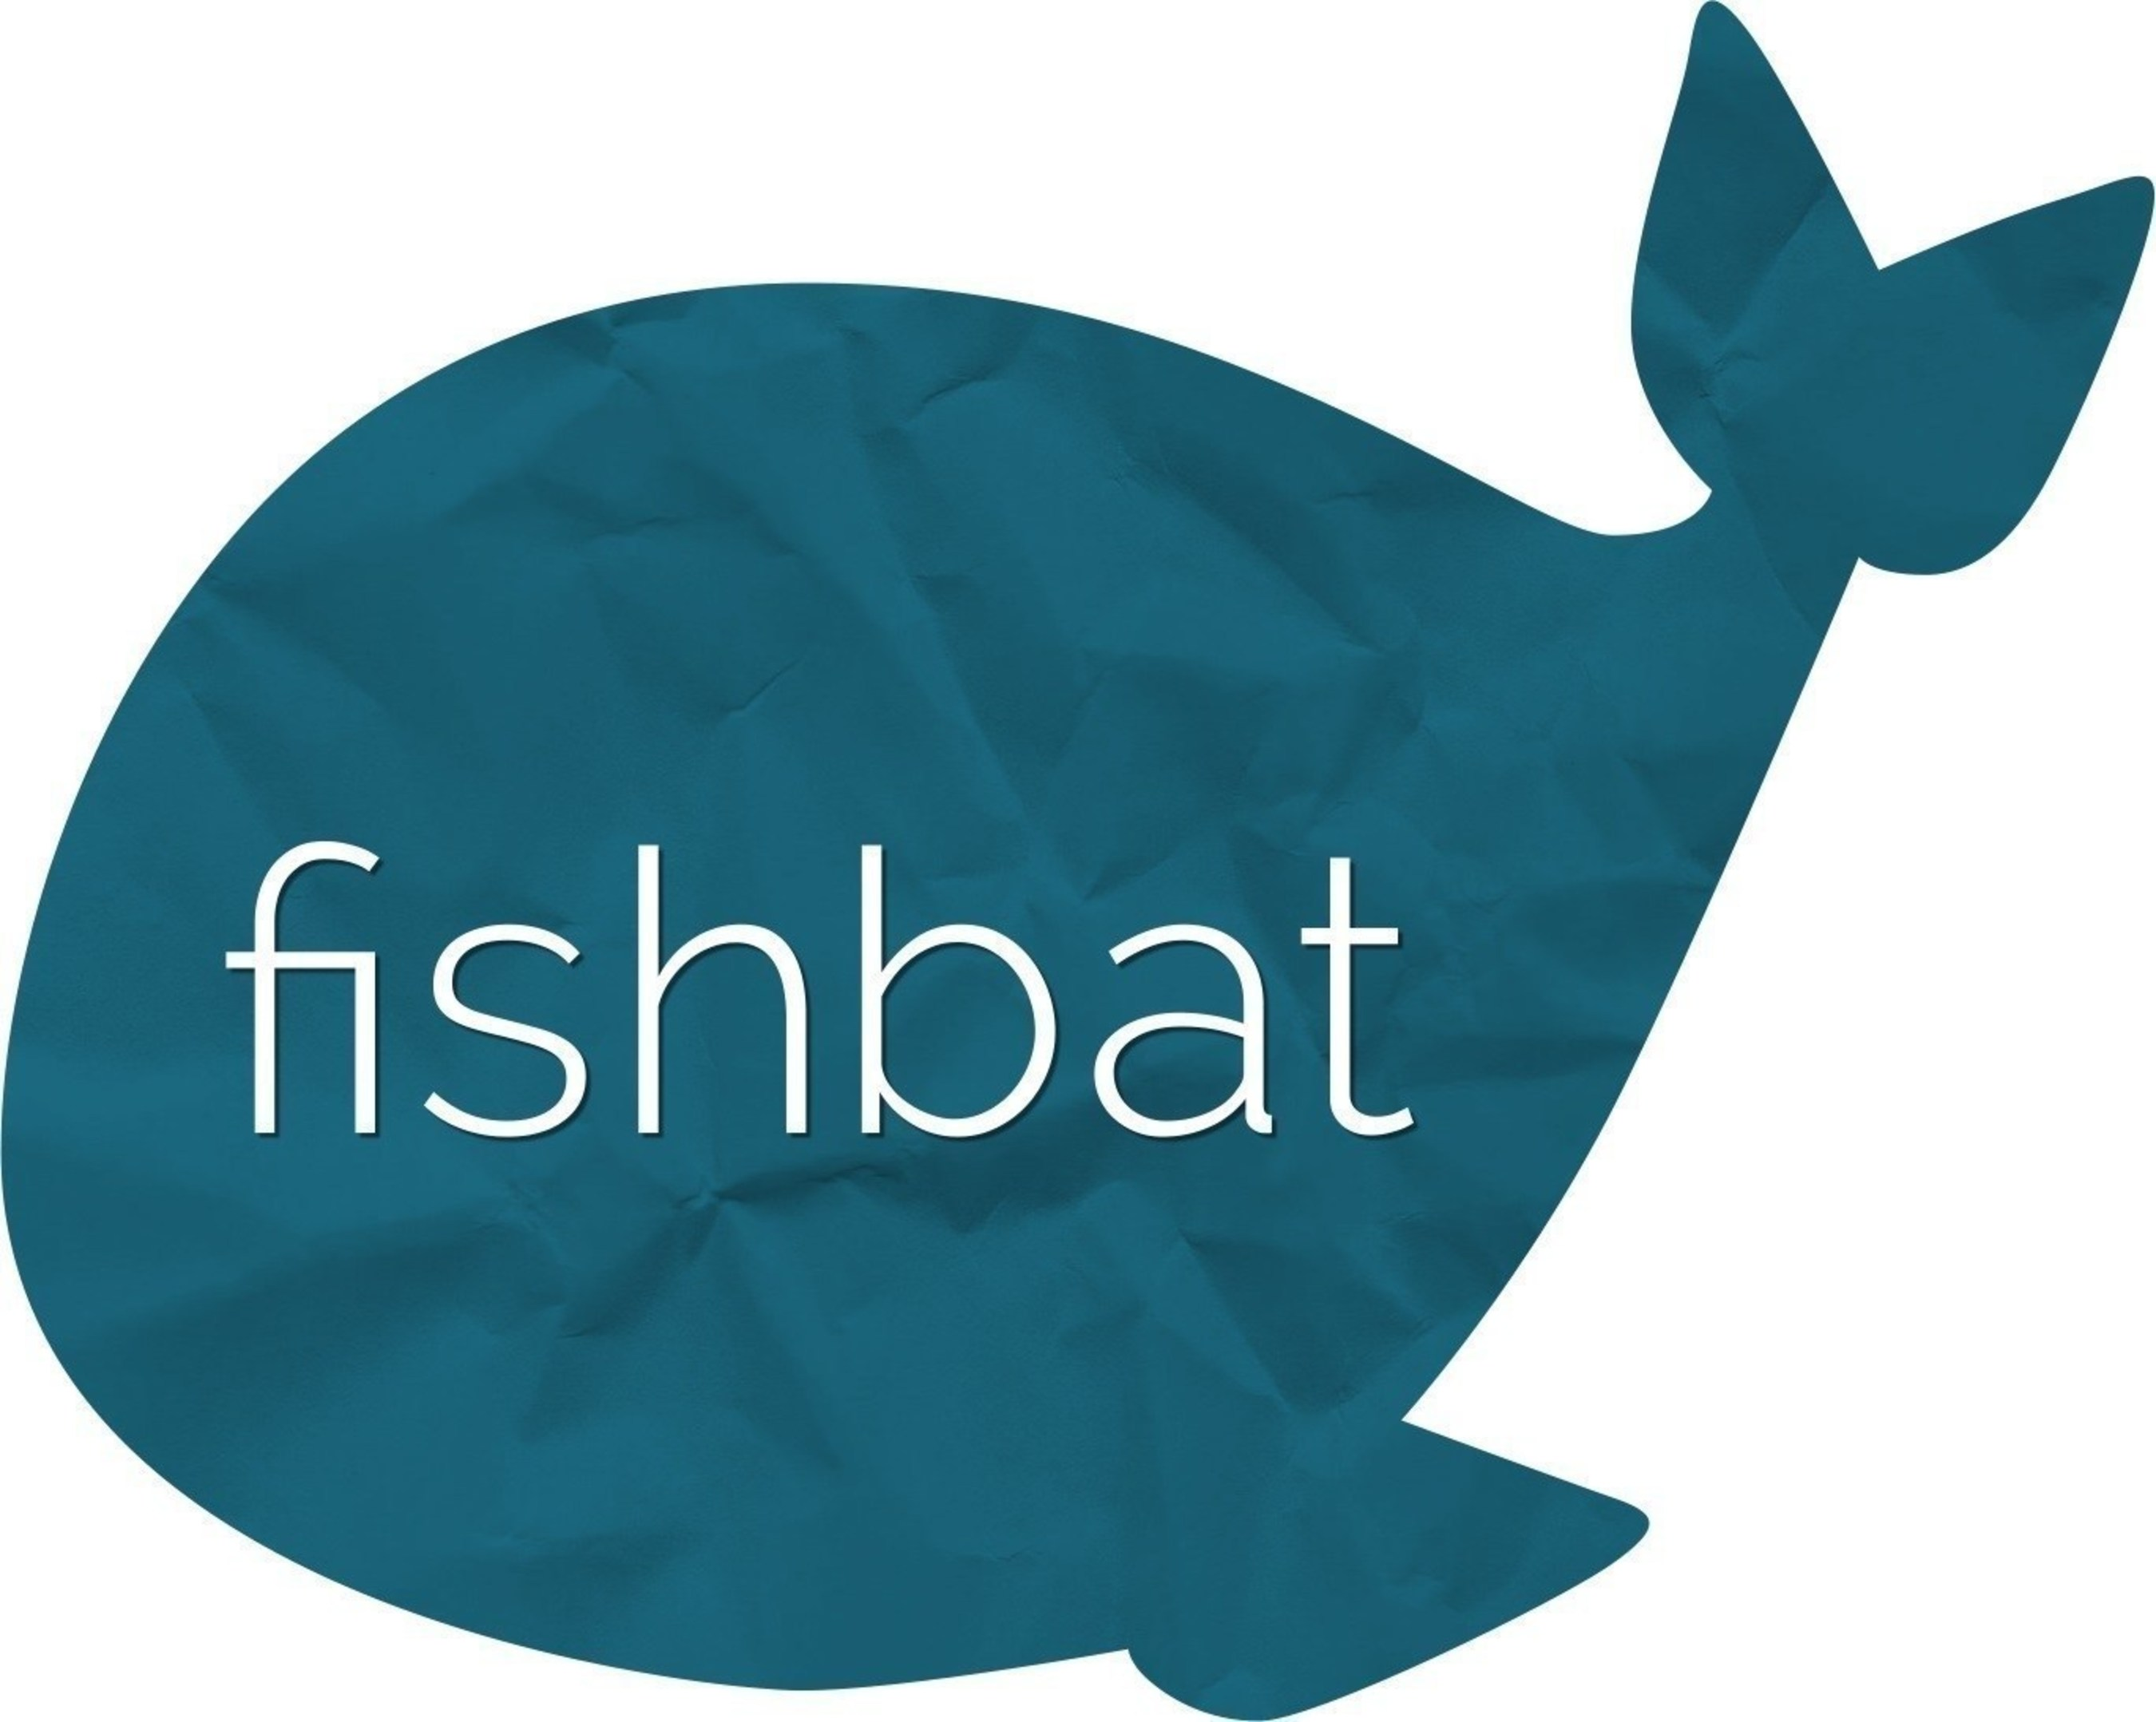 SEO Agency, fishbat, Talks About 3 Ways Marketing on Blab Can Grow Your Business